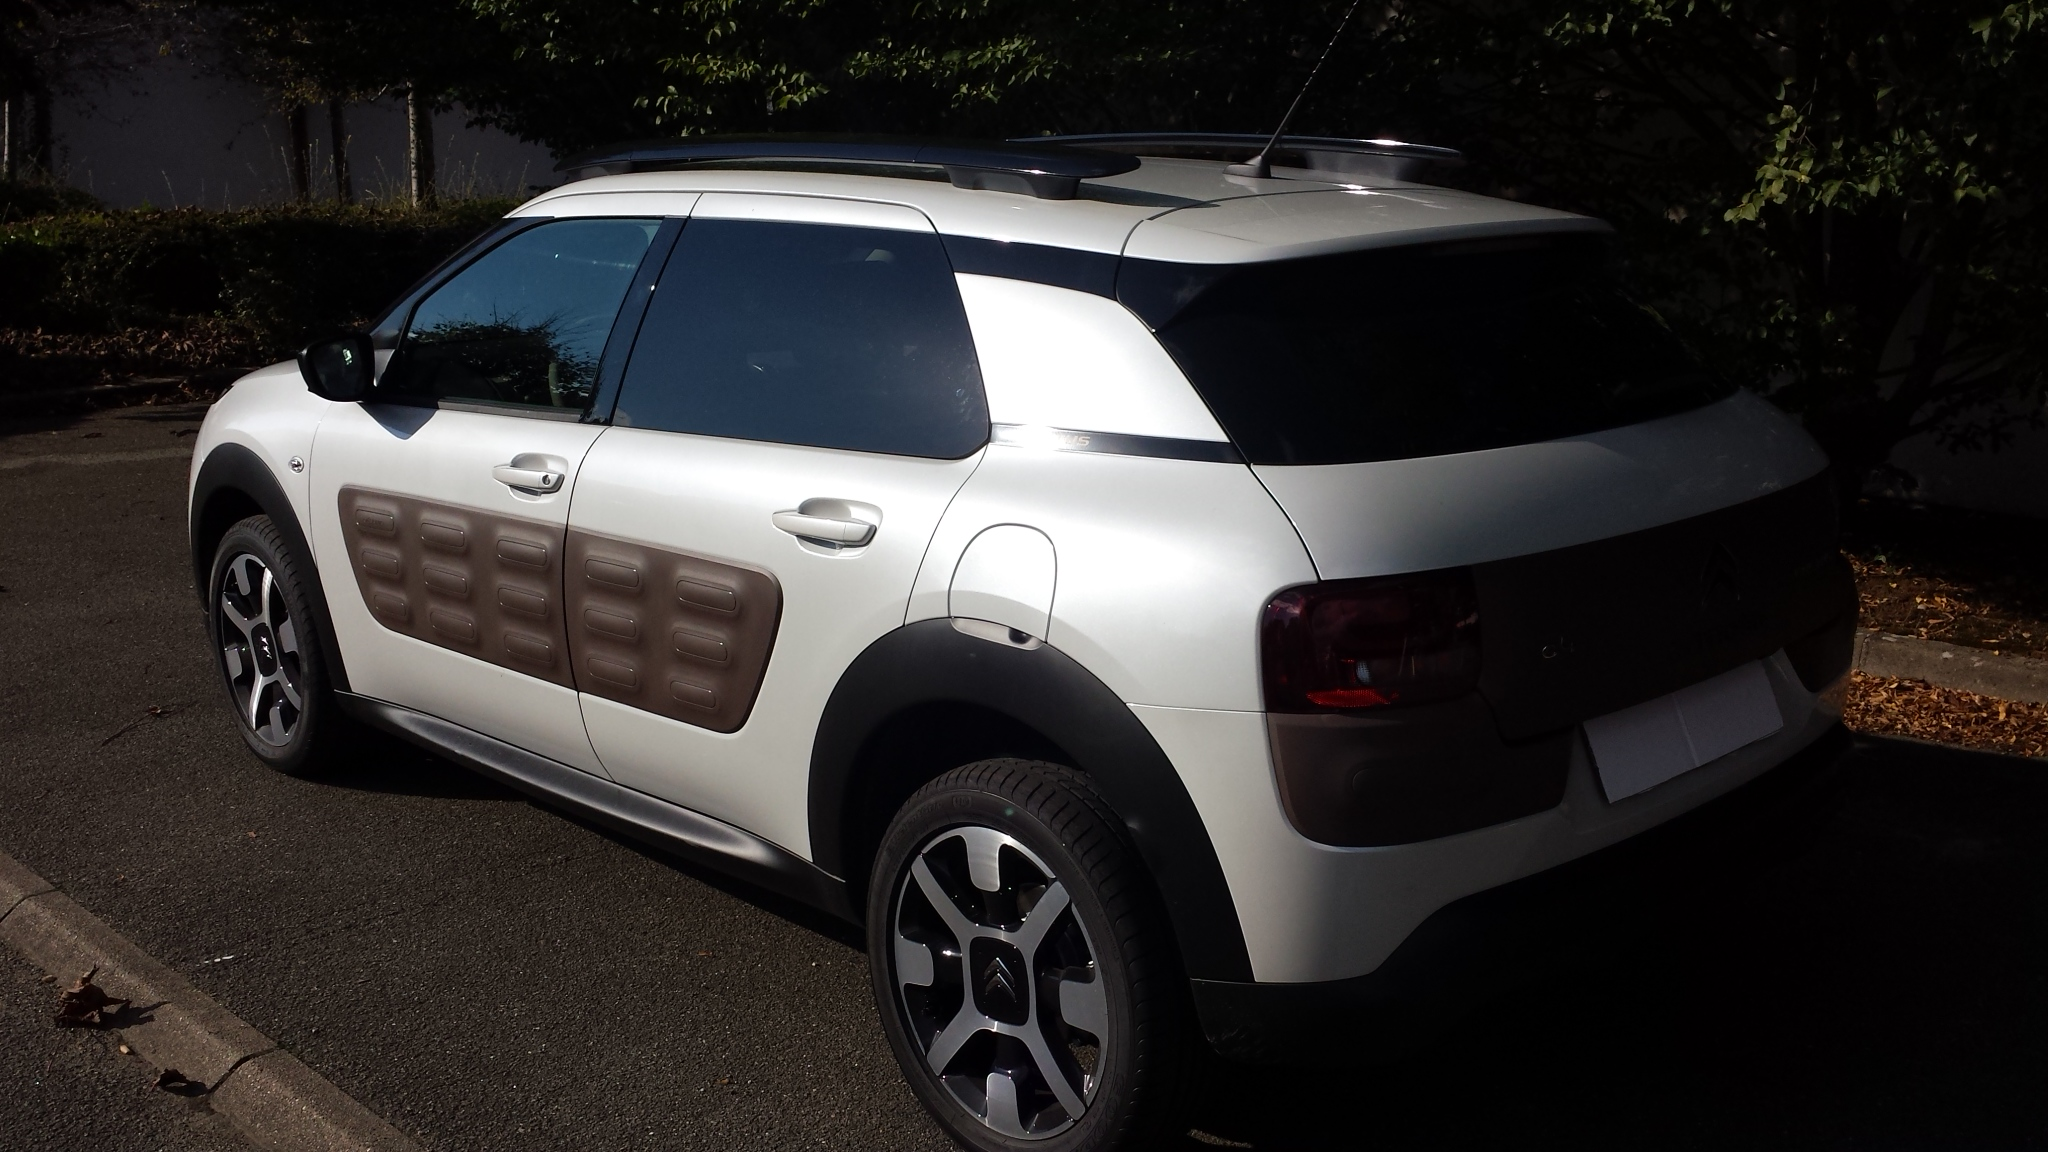 essai video citroen c4 cactus 1 6 blue hdi 100 shine